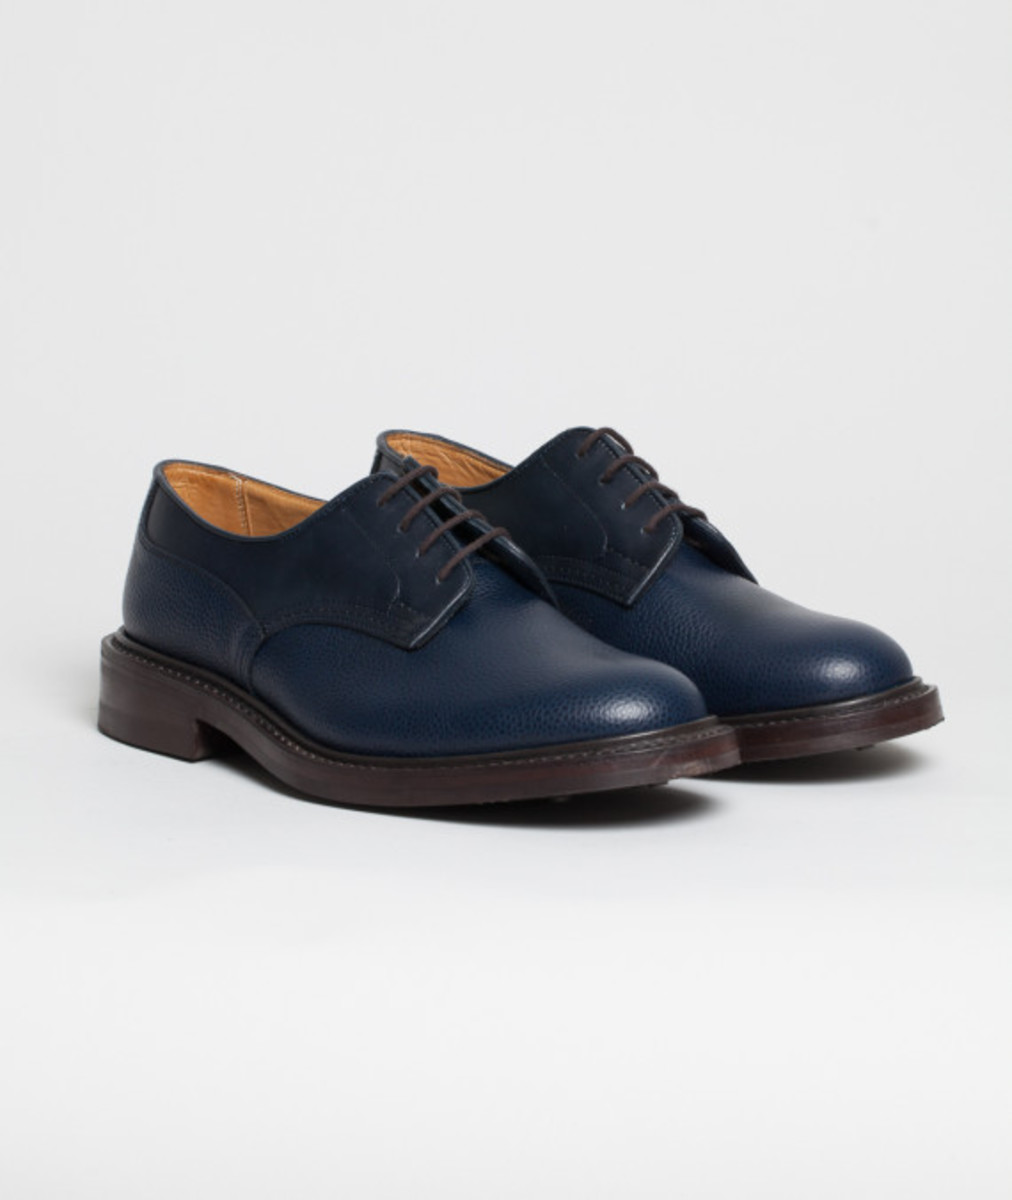 norse-projects-trickers-woodstock-07